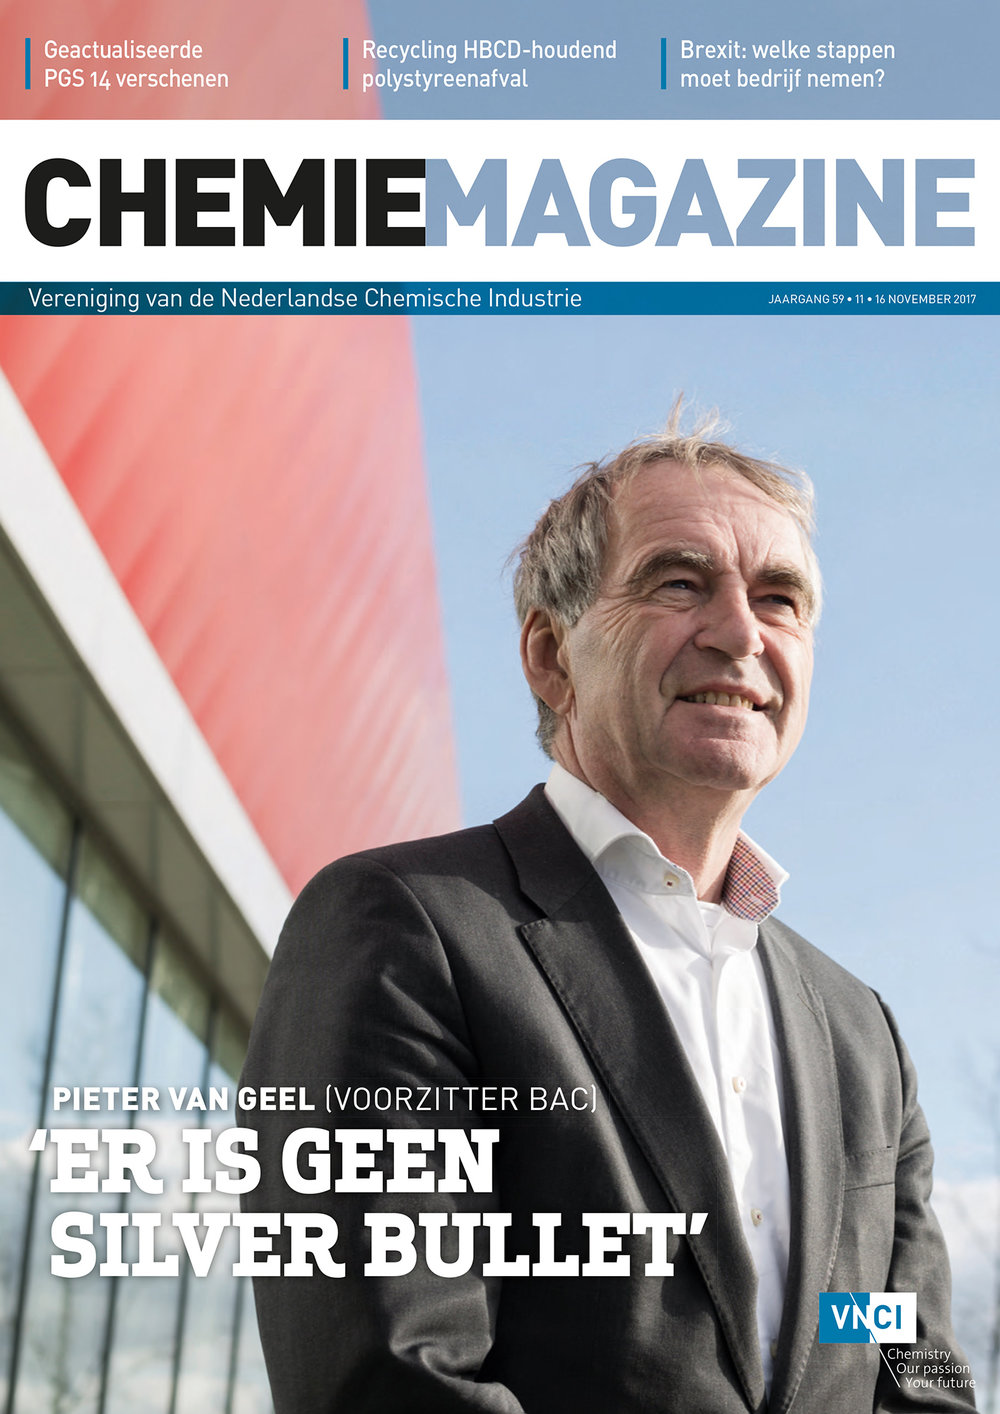 Curve: coververhaal Chemie-magazine.